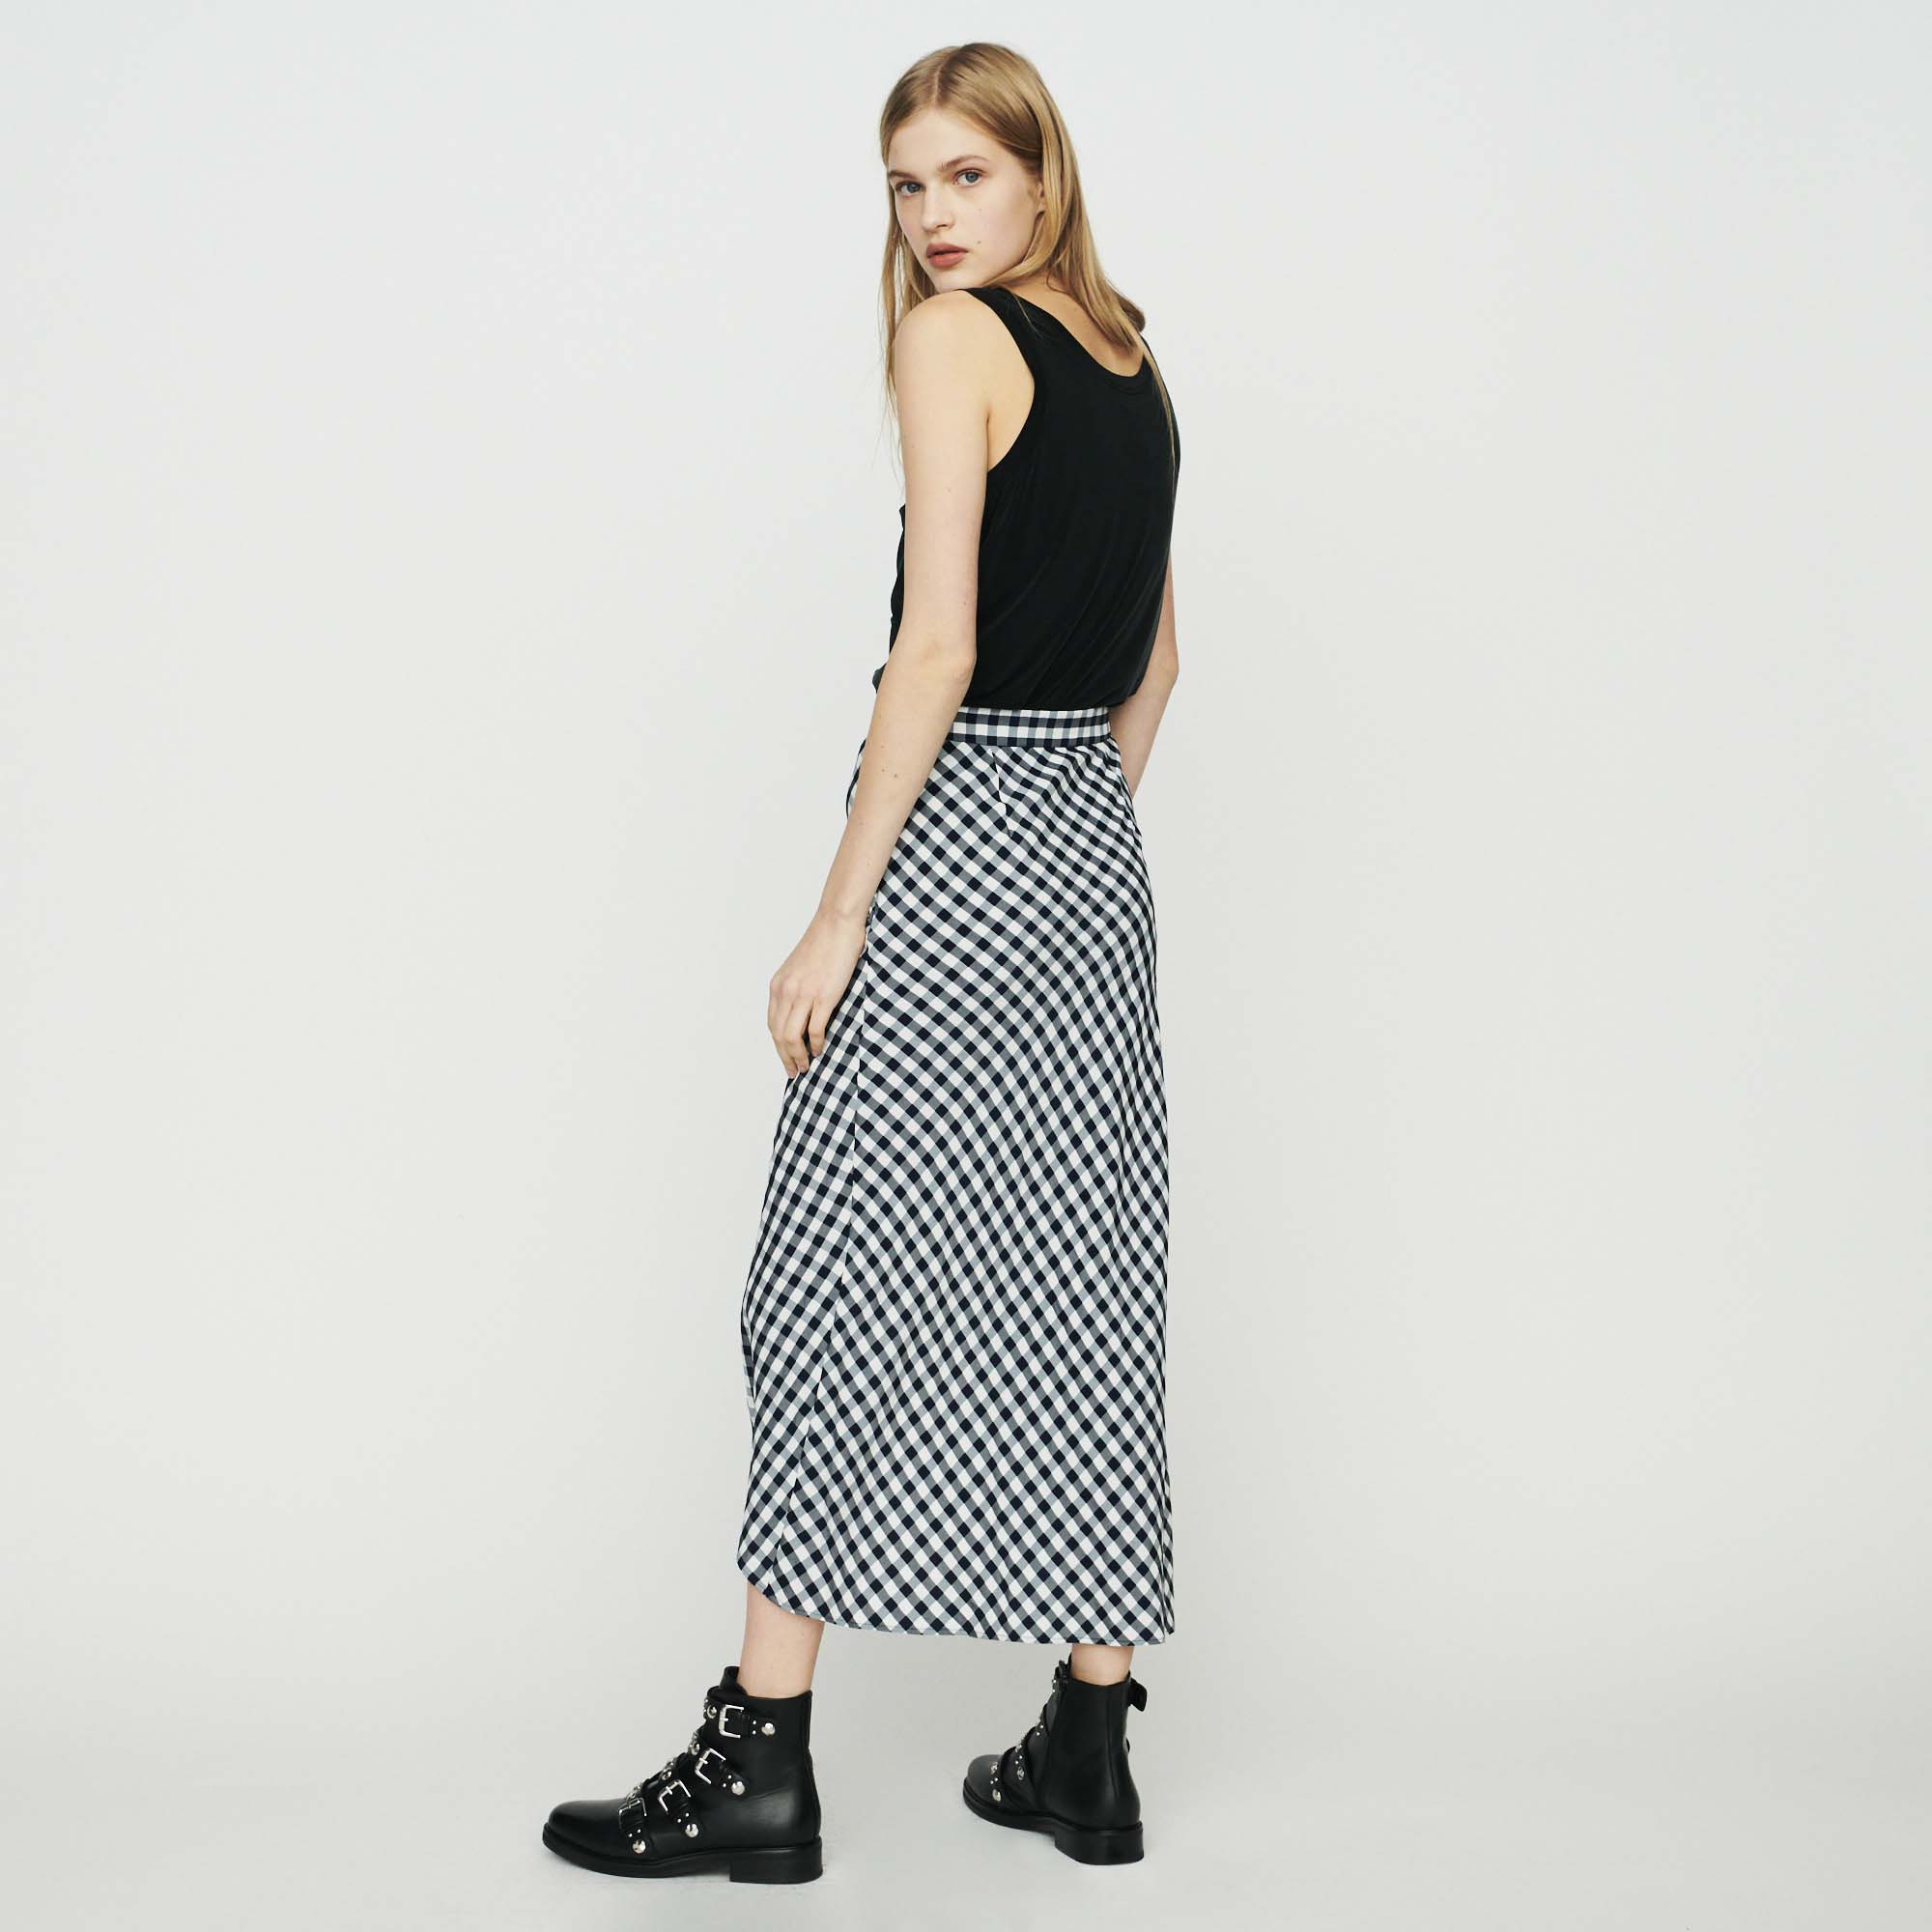 Skirt with vichy print - Check